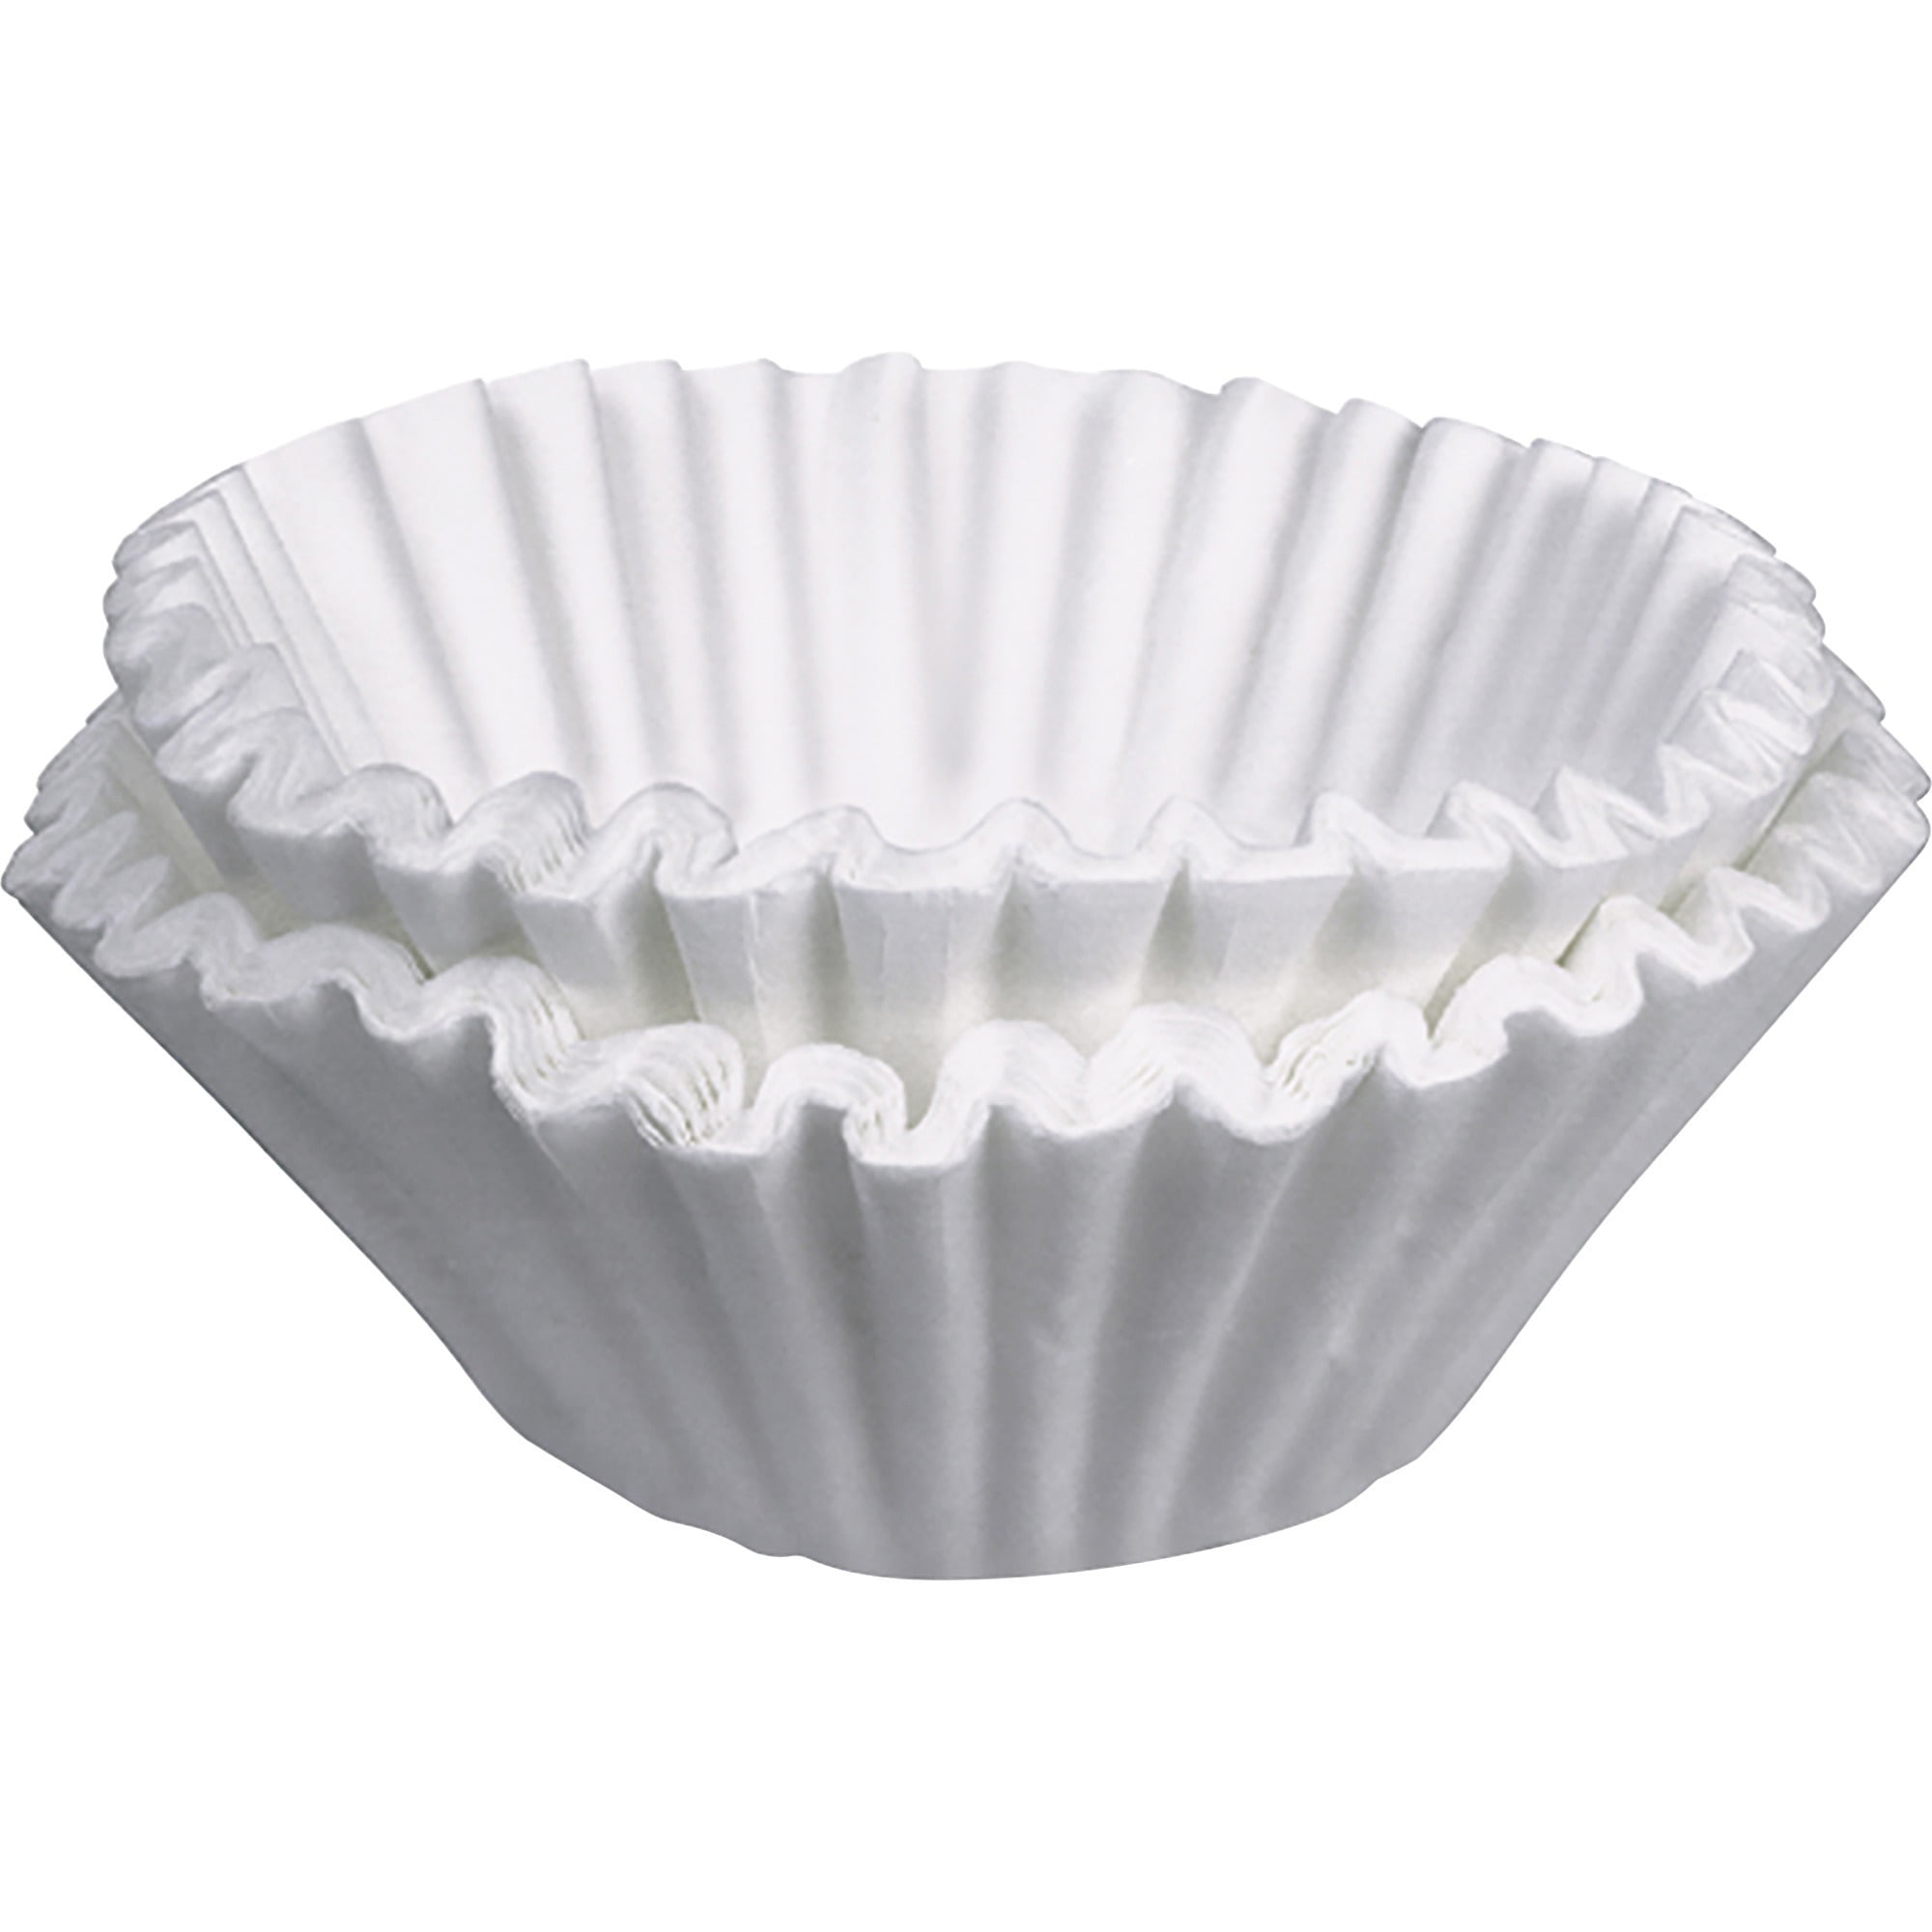 8//12-Cup Size Bunn Coffee Filters